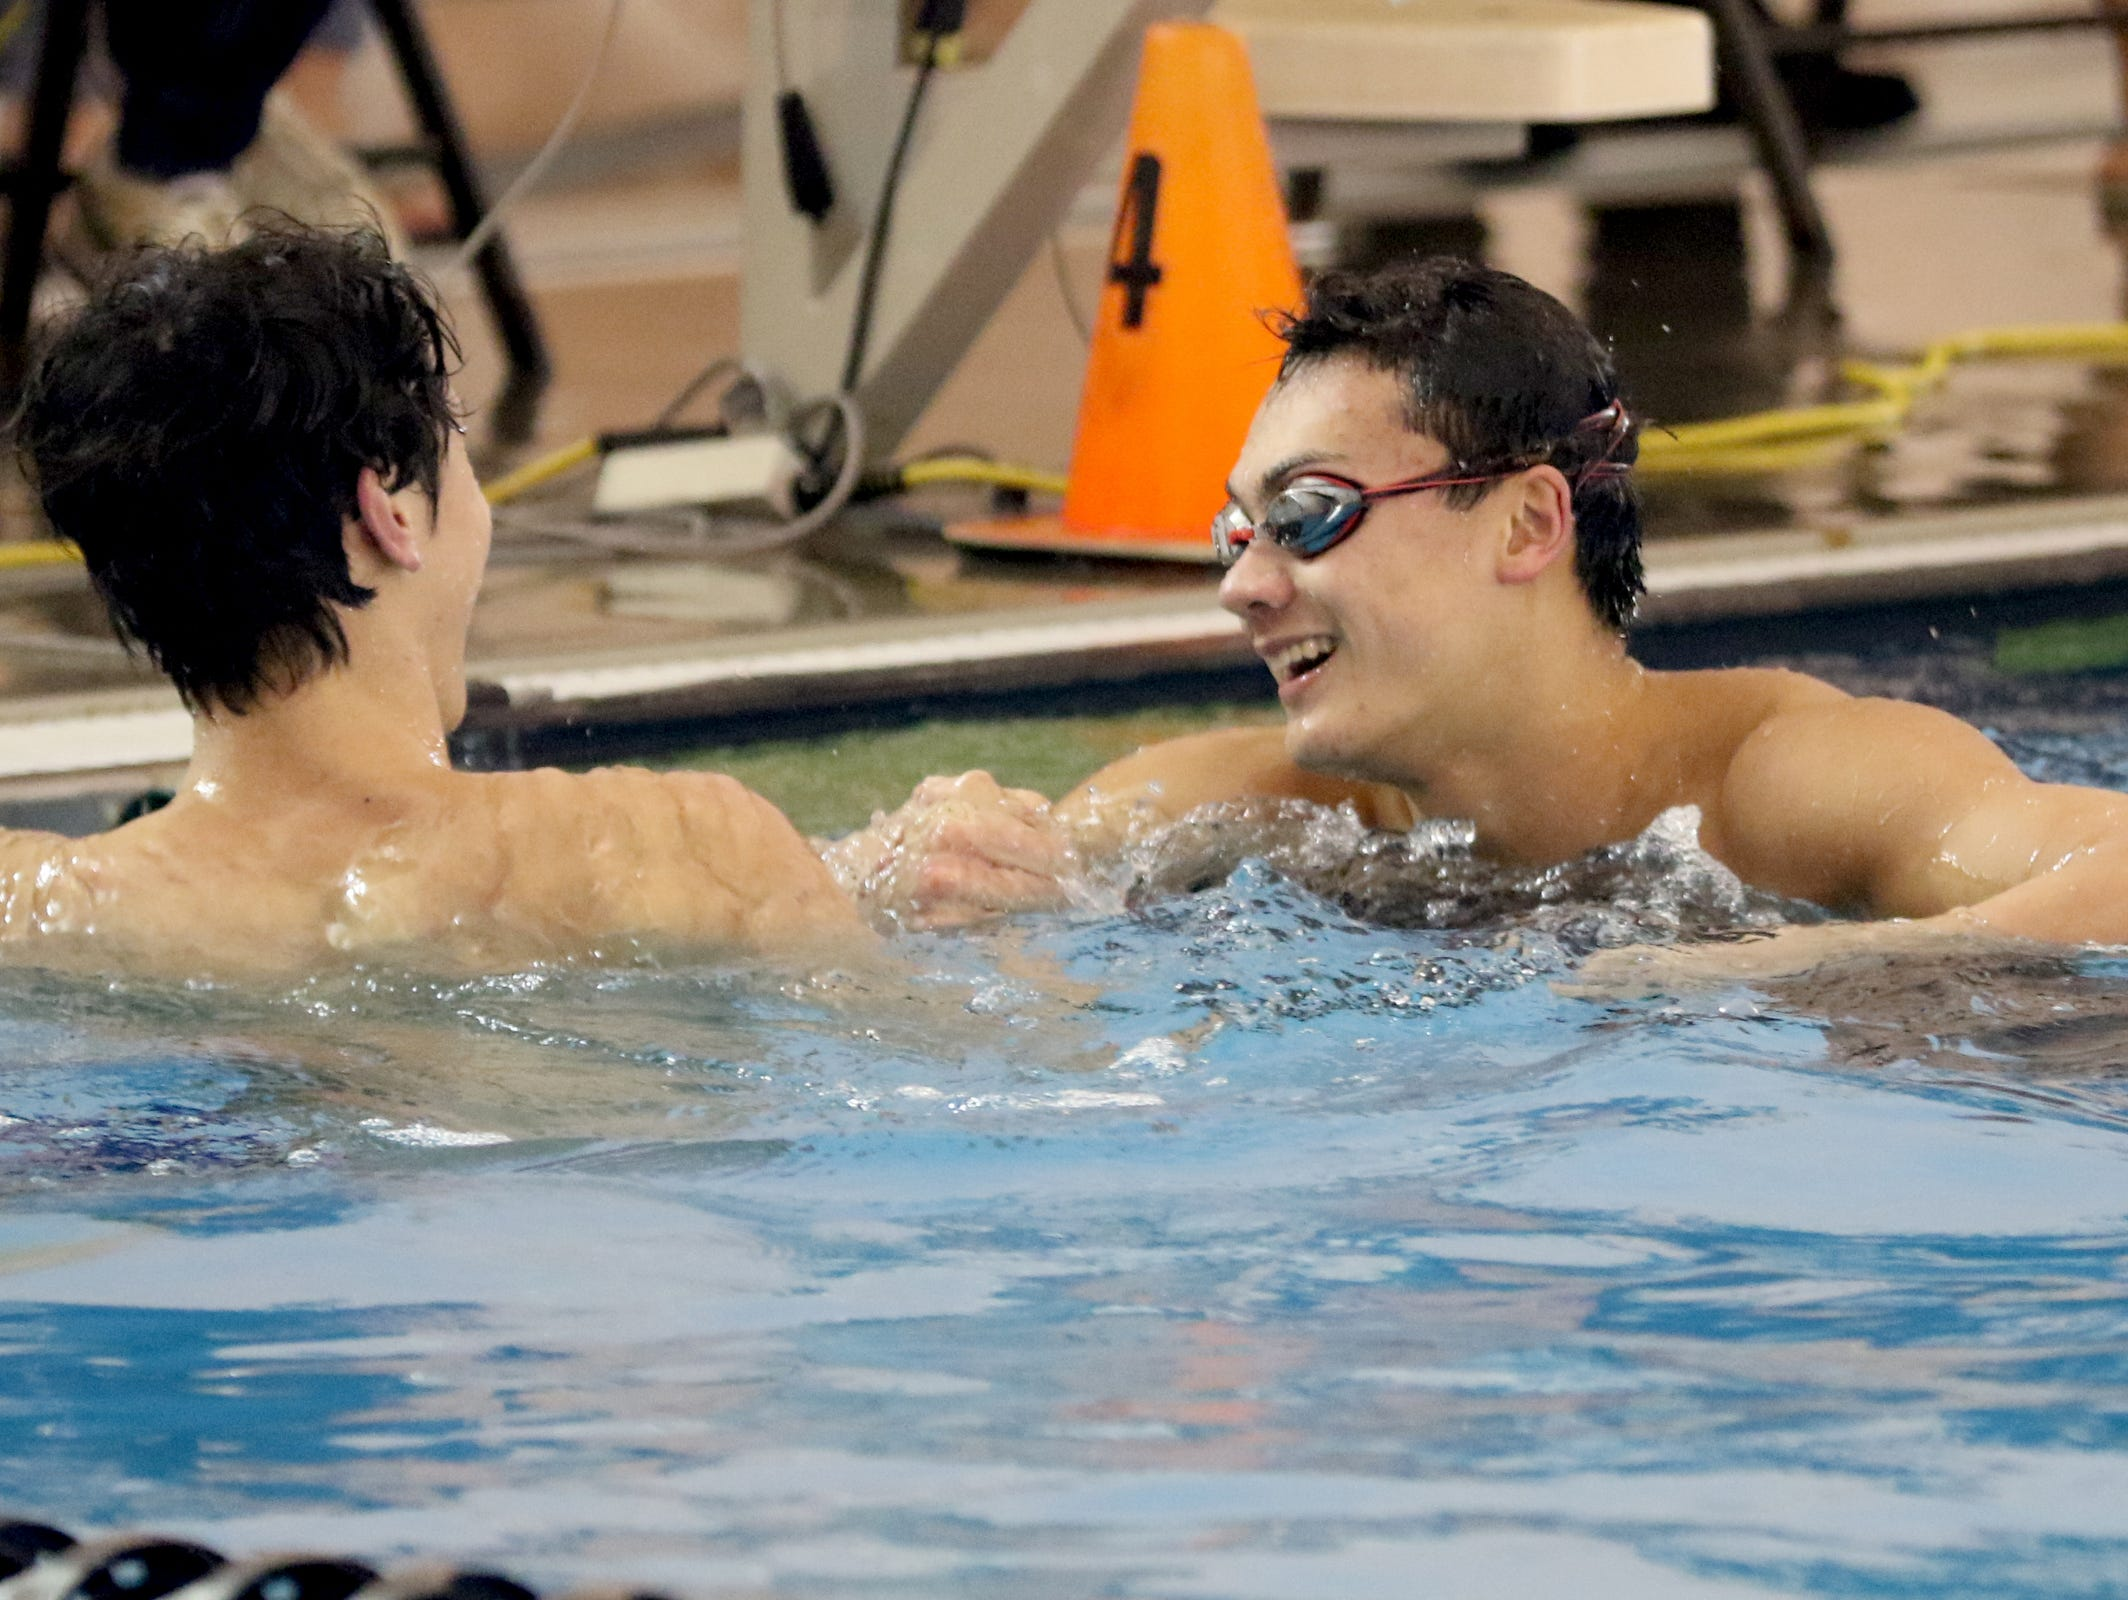 West Salem's Micah Masei, right, shakes hands with Wilson's Evan Carlson after they placed second and first, respectively, in the 50 yard freestyle during the OSAA Class 6A Swimming State Championships at Mt. Hood Community College in Gresham on Saturday, Feb. 18, 2017.